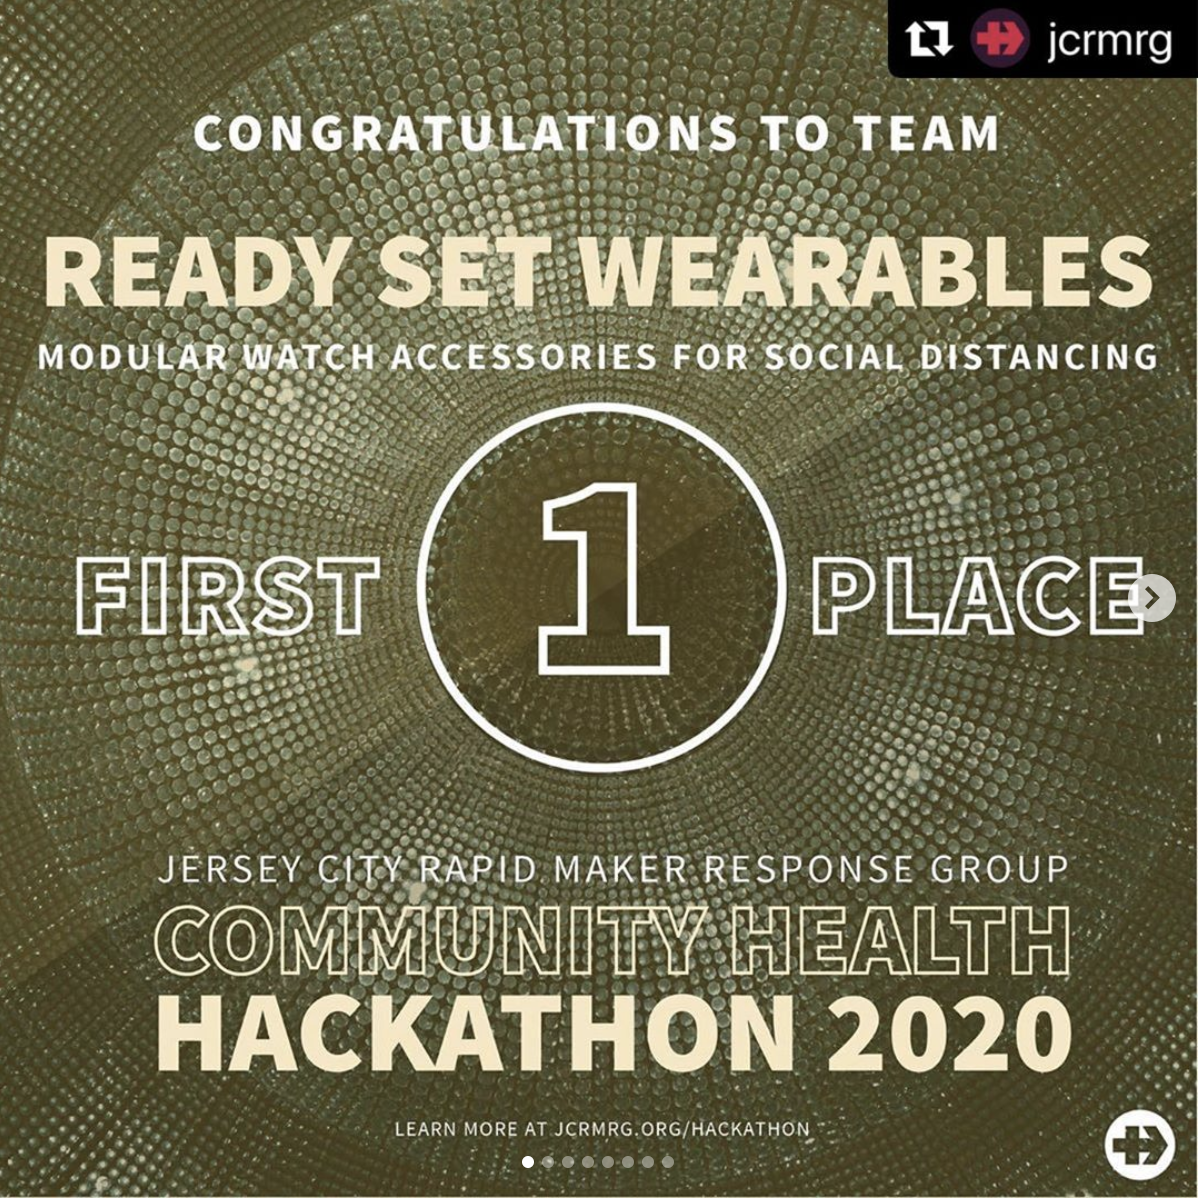 Ready Set Wearables First Place Jersey City Rapid Maker Response Group Hackathon